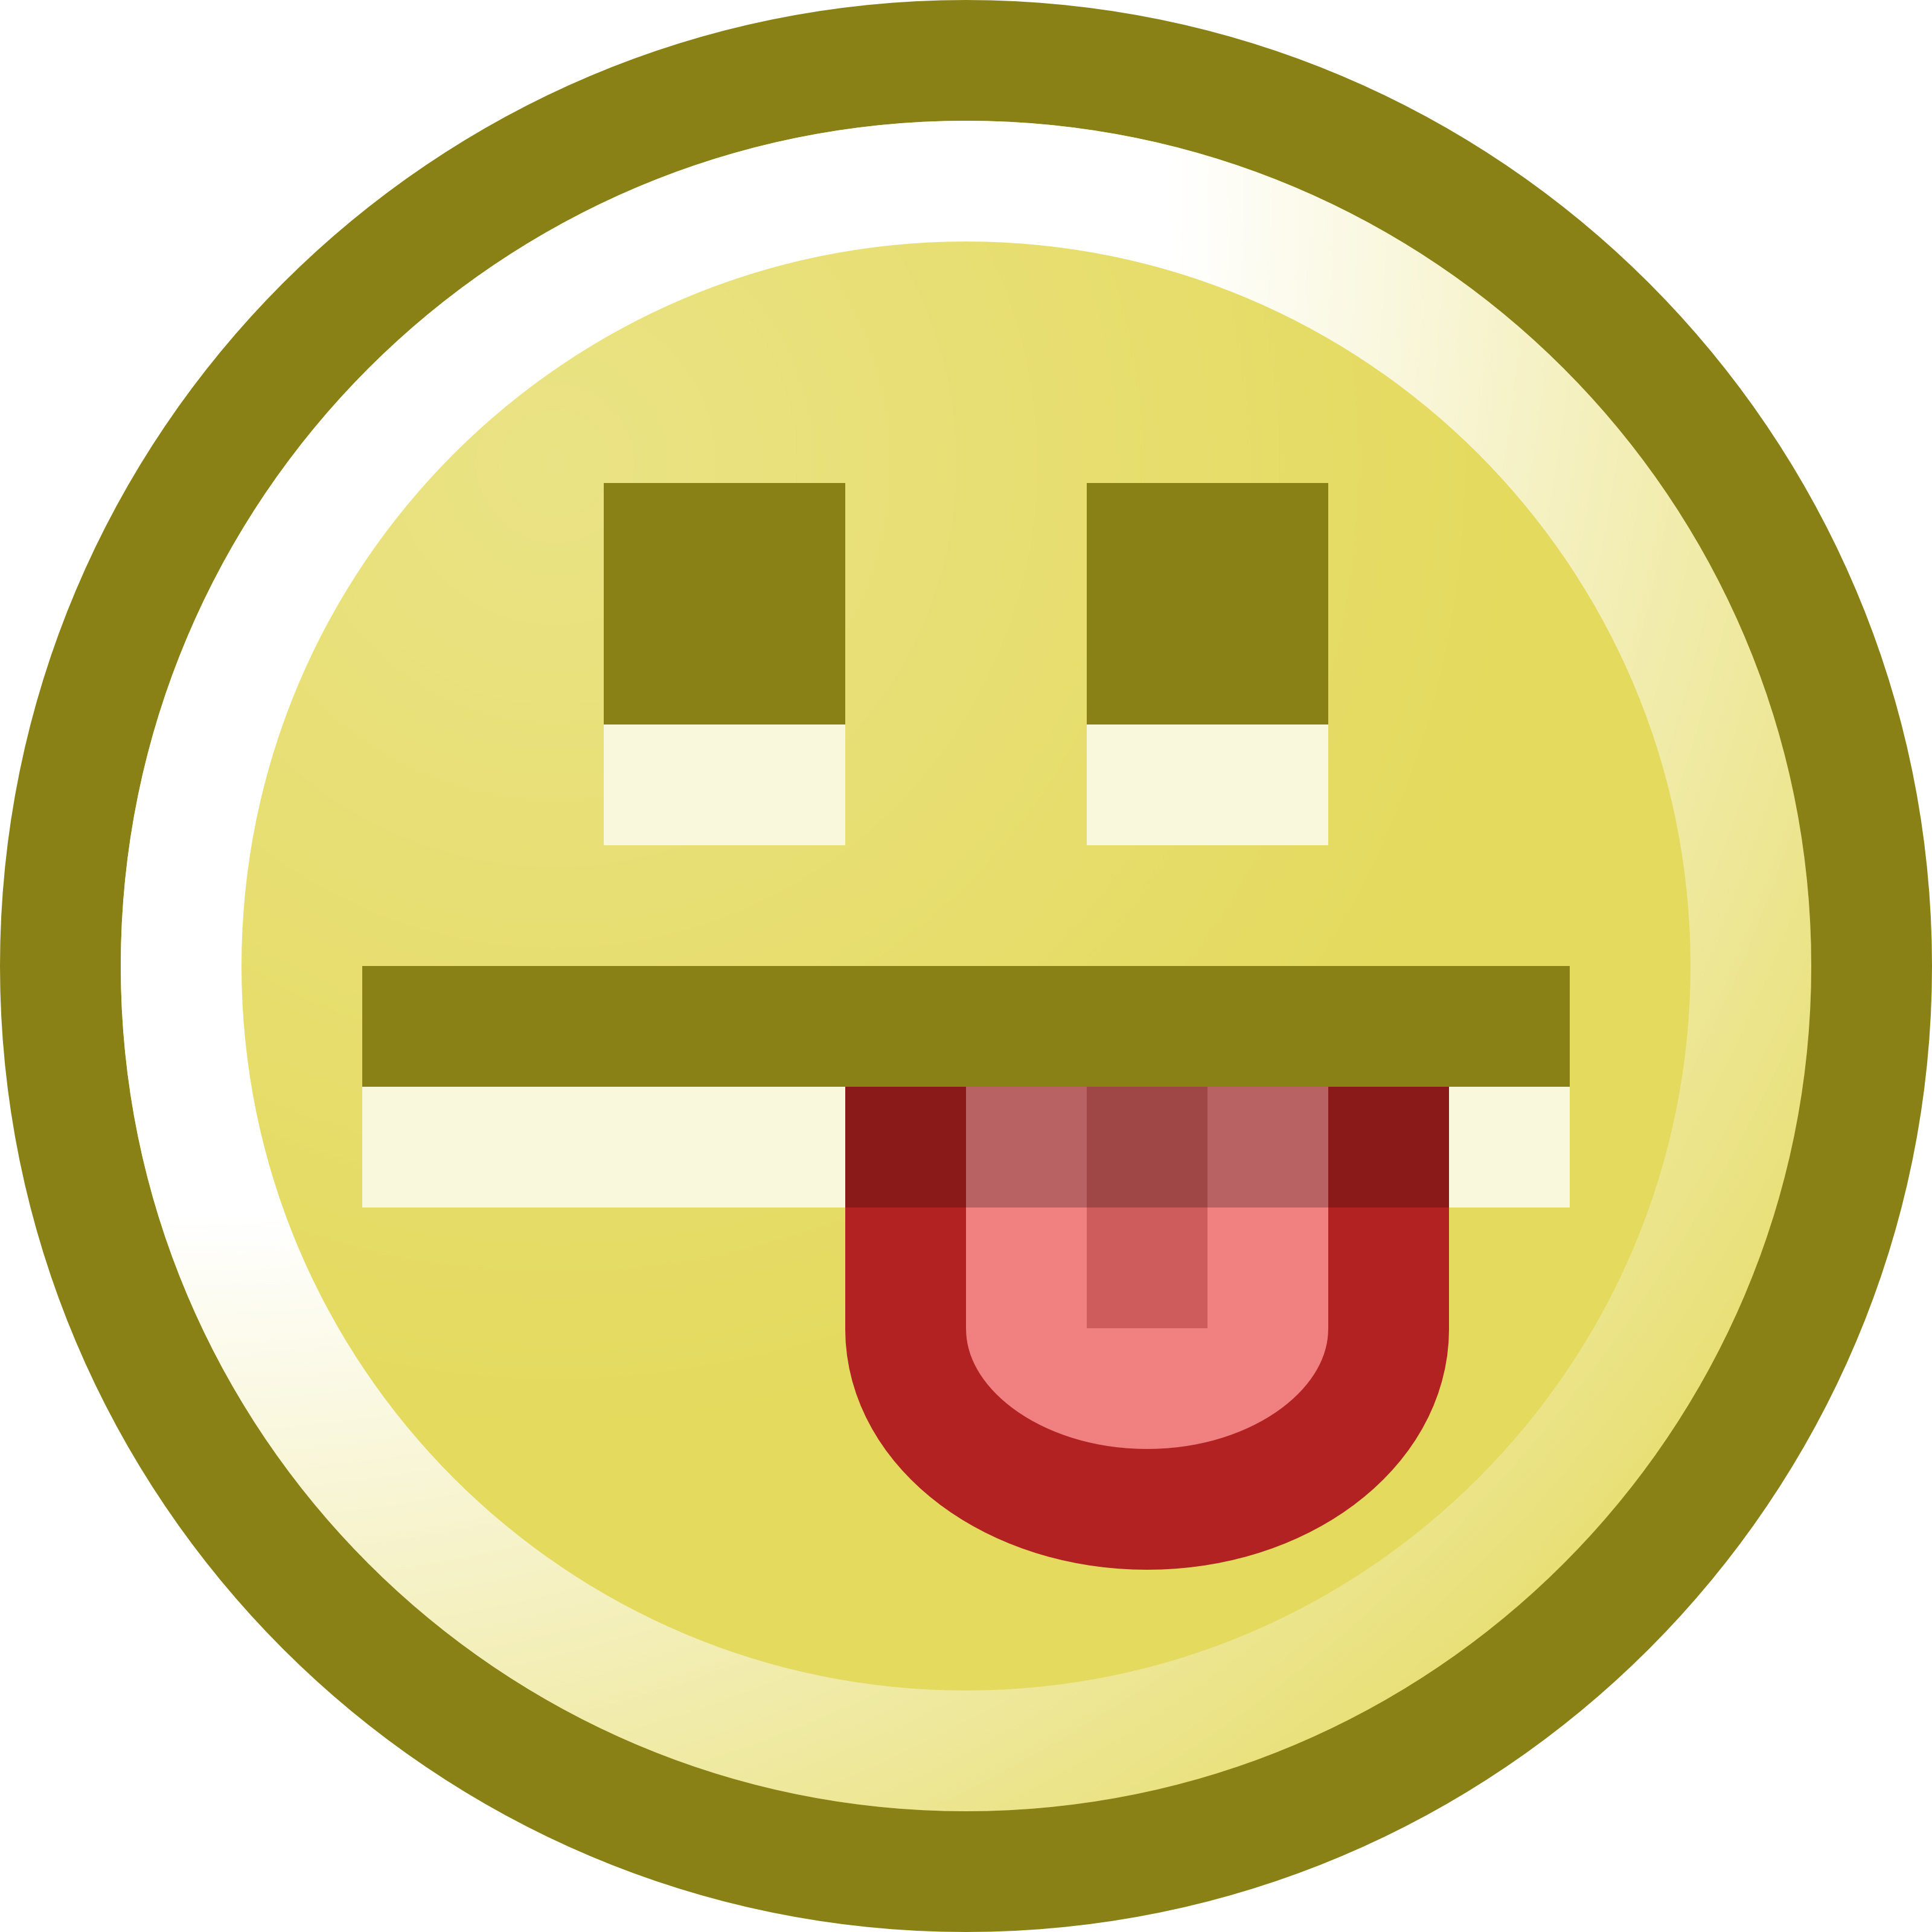 free smiley face sticking tongue out clip art illustration